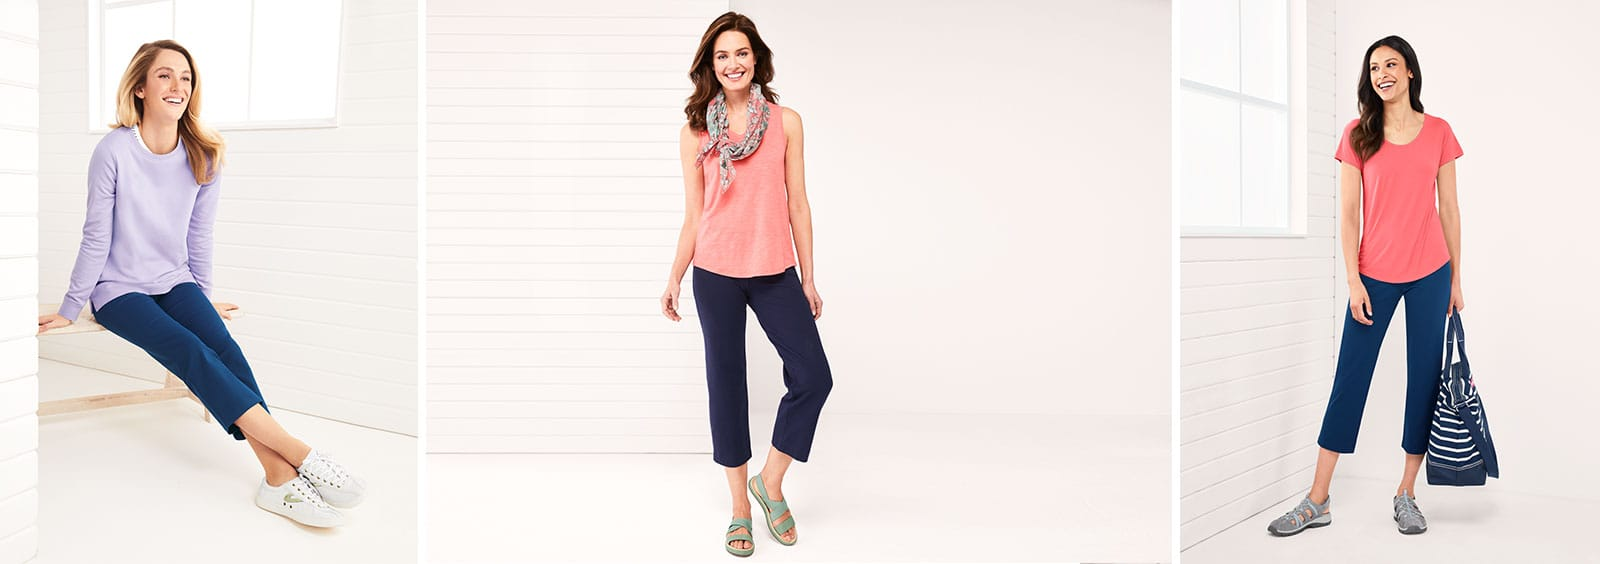 How to style capris and crops on any body type